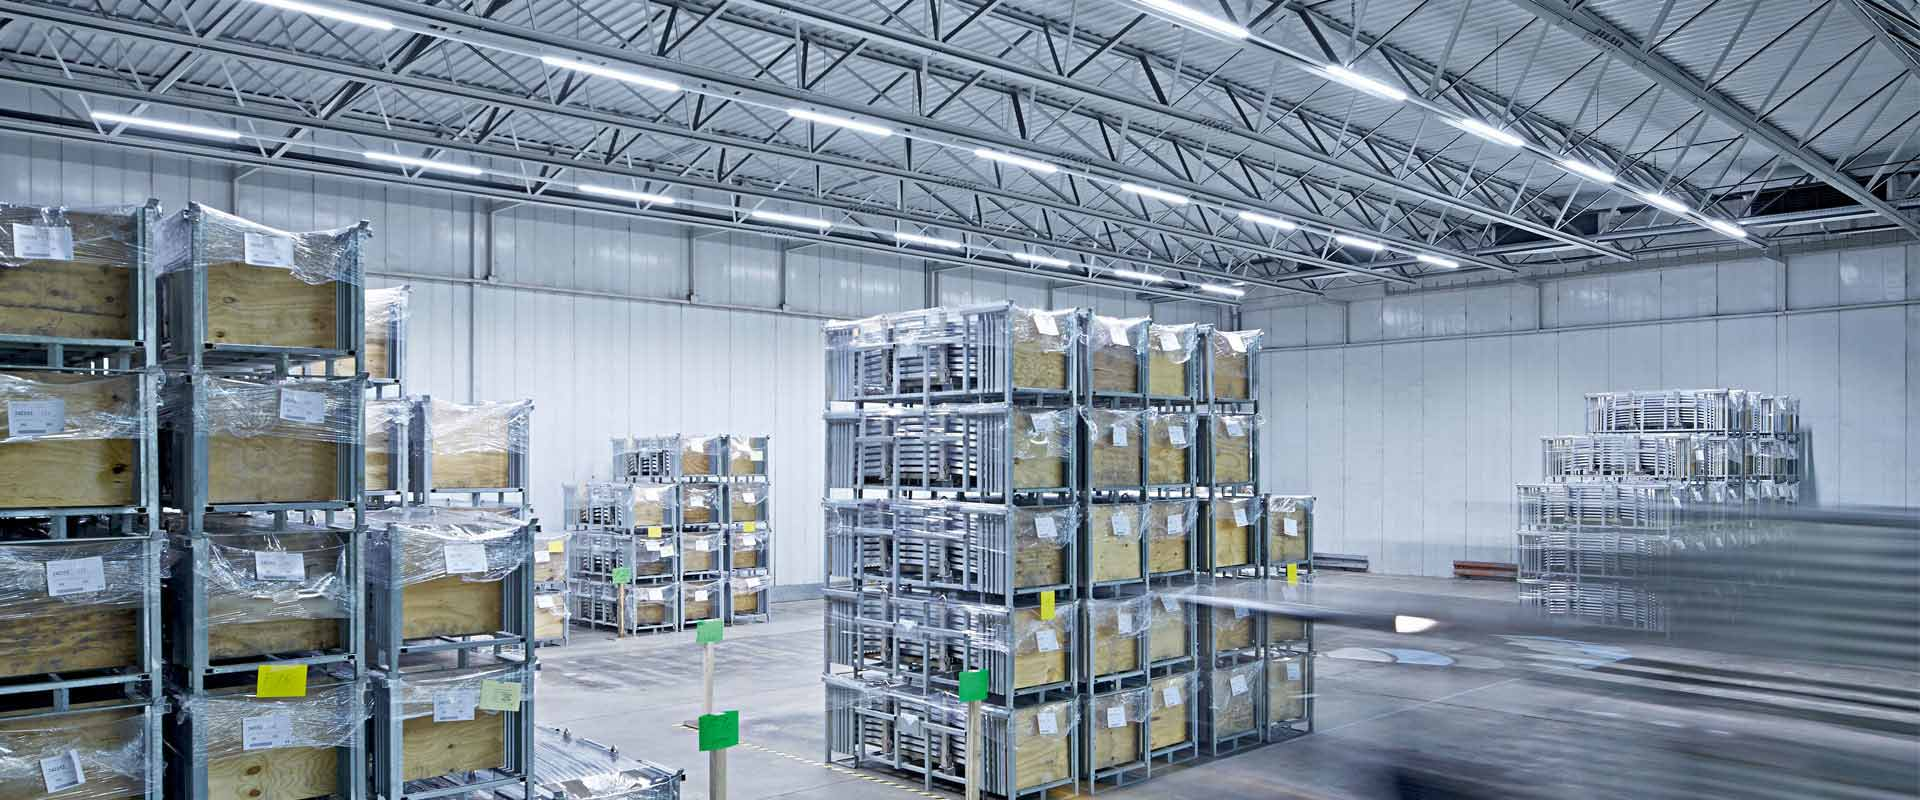 Led Warehouse Lighting